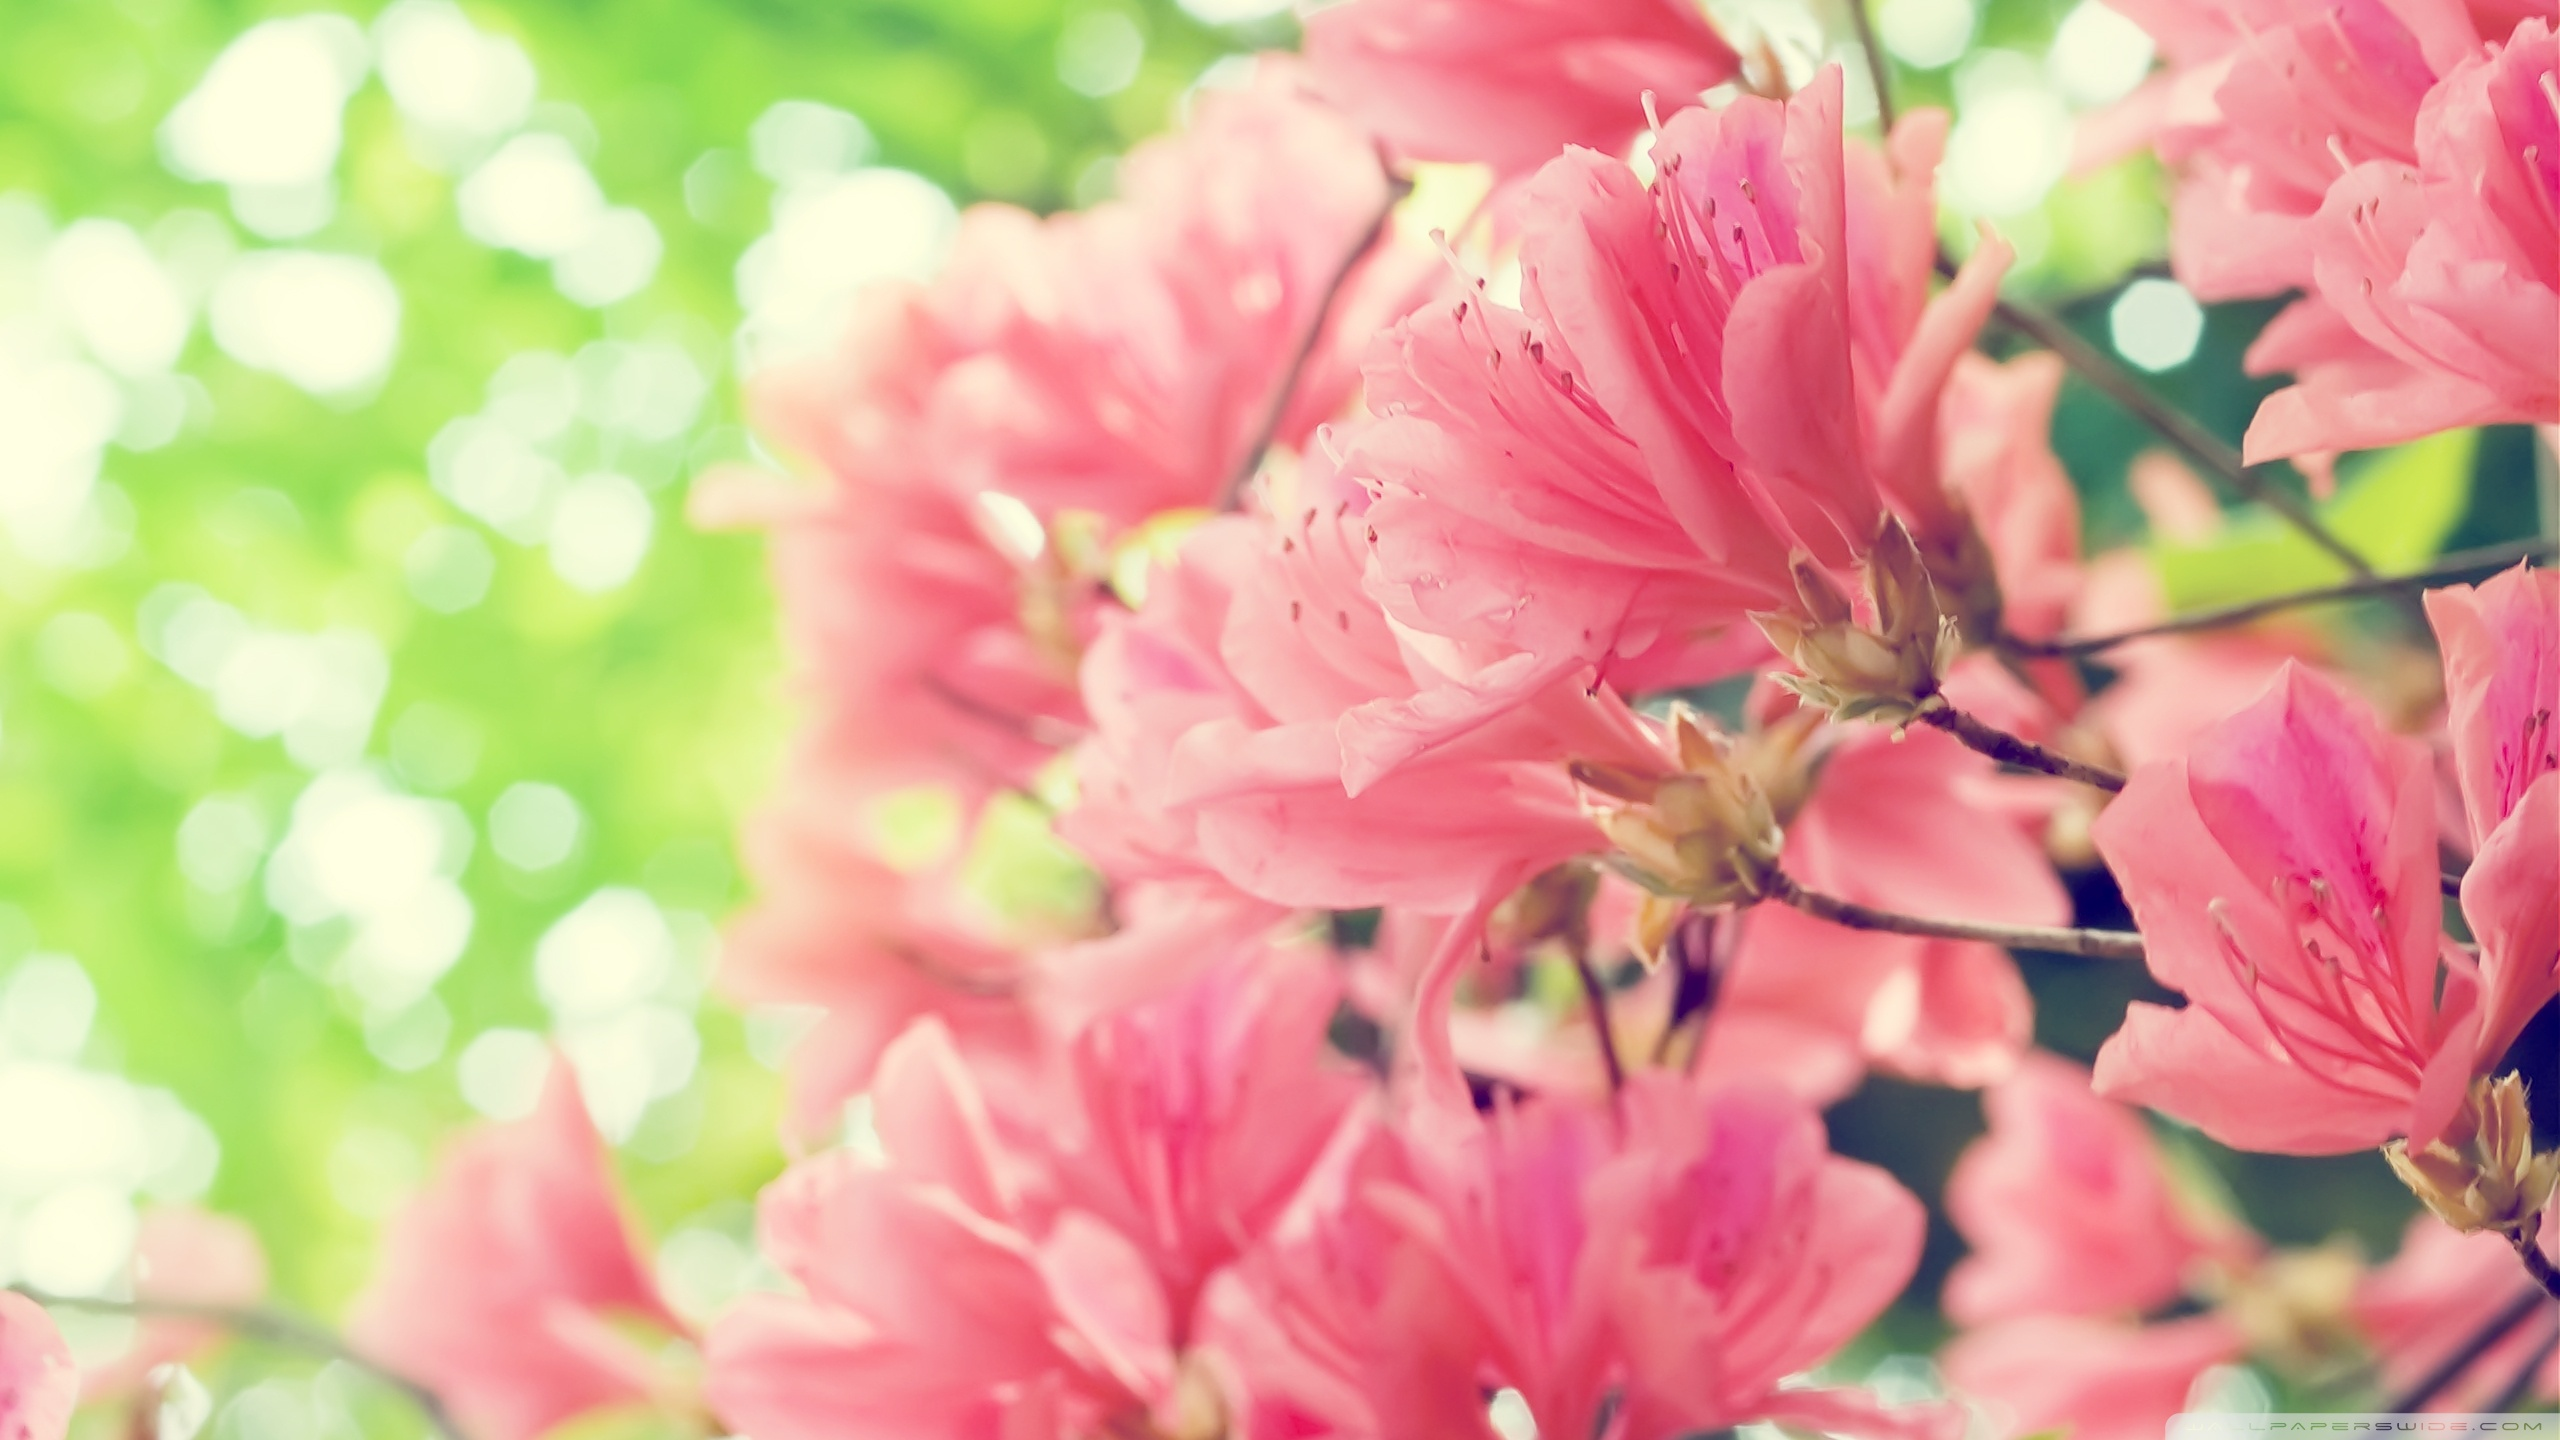 Beautiful flowers wallpapers pictures images beautiful flowers wallpaper mightylinksfo